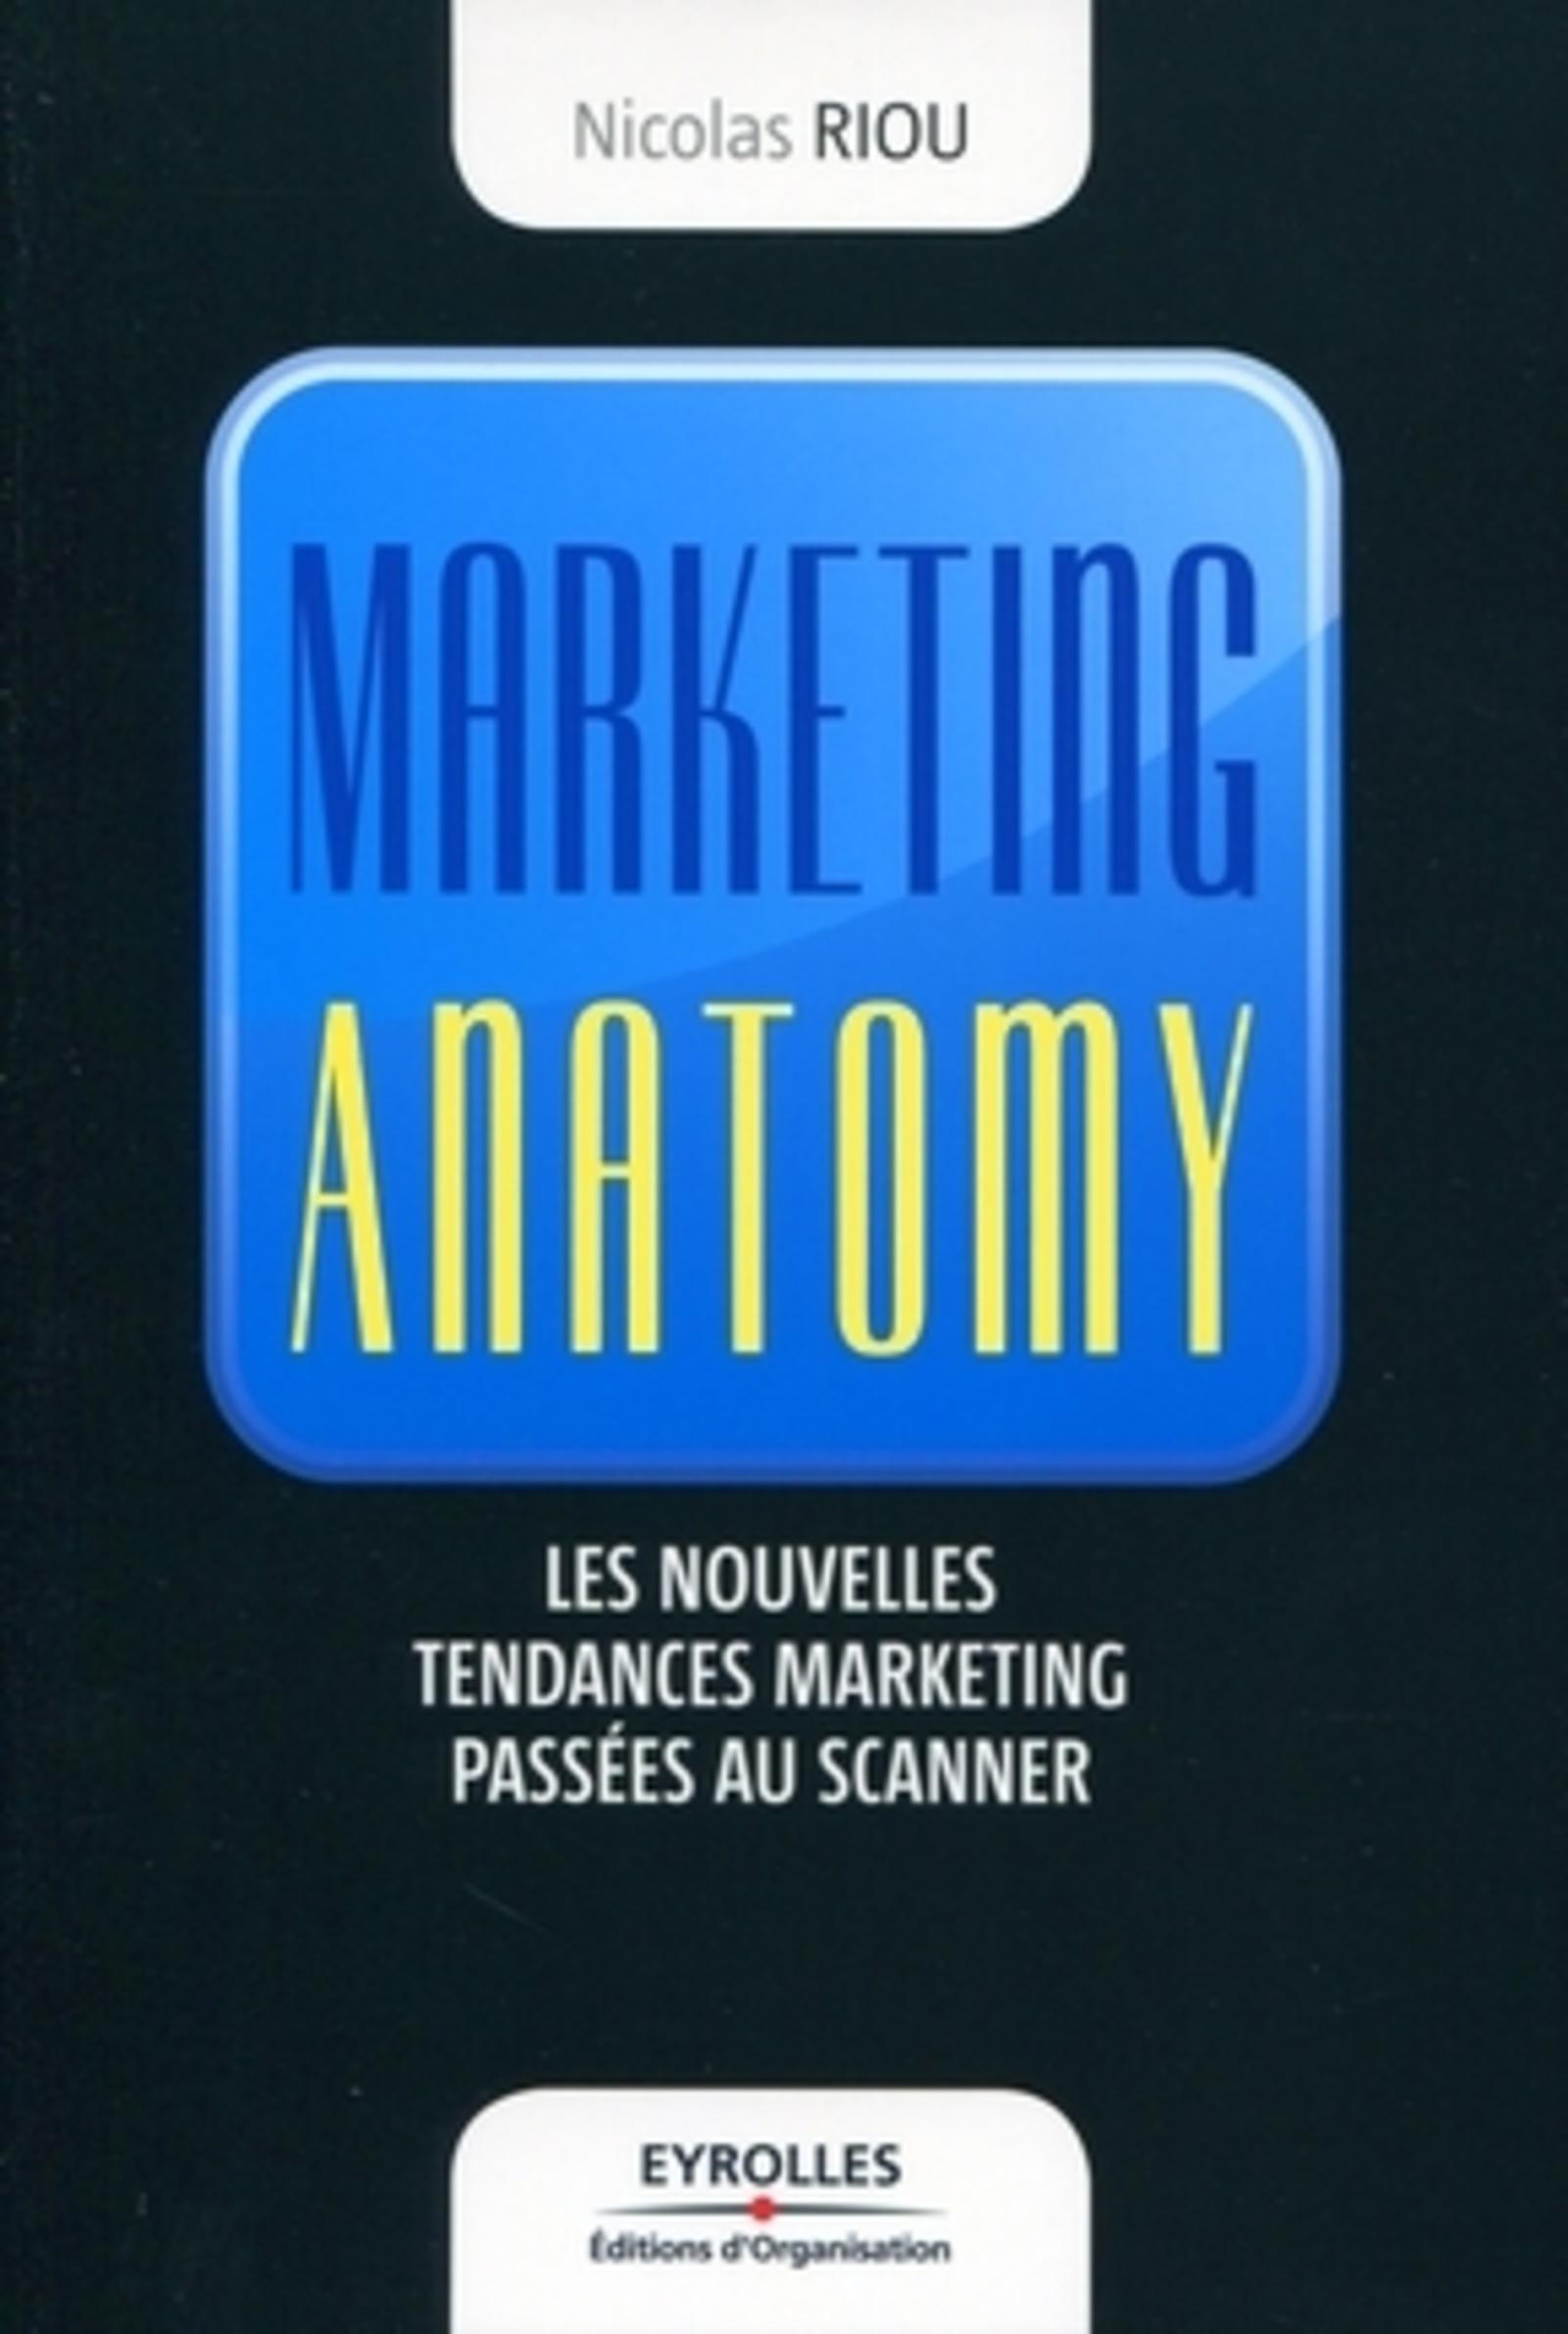 MARKETING ANATOMY - LES NOUVELLES TENDANCES DU MARKETING PASSEES AU SCANNER